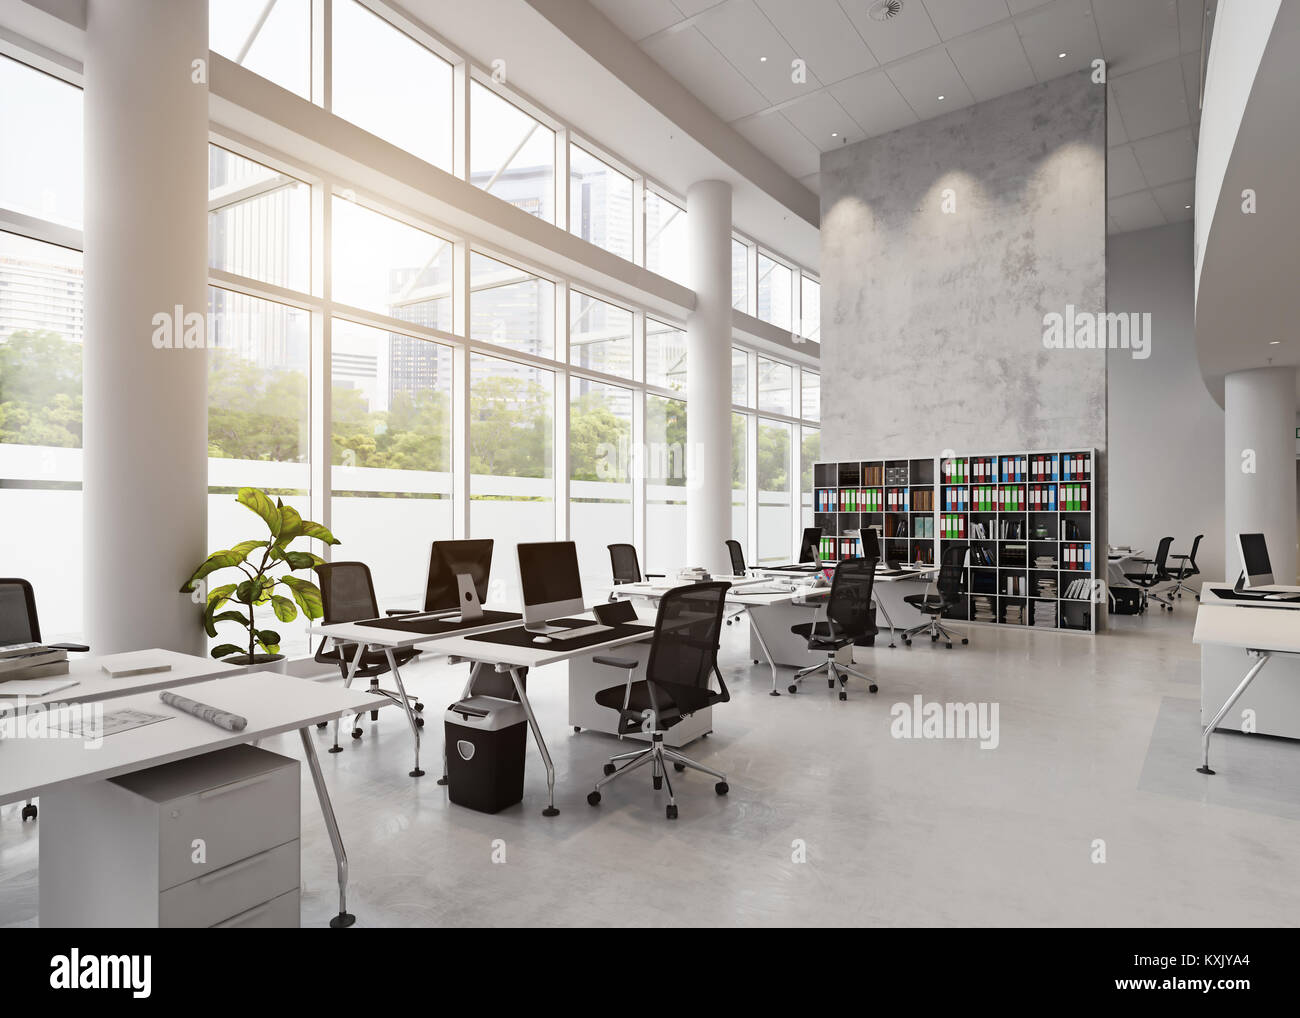 modern office building interior. 3d rendering concept stock photo